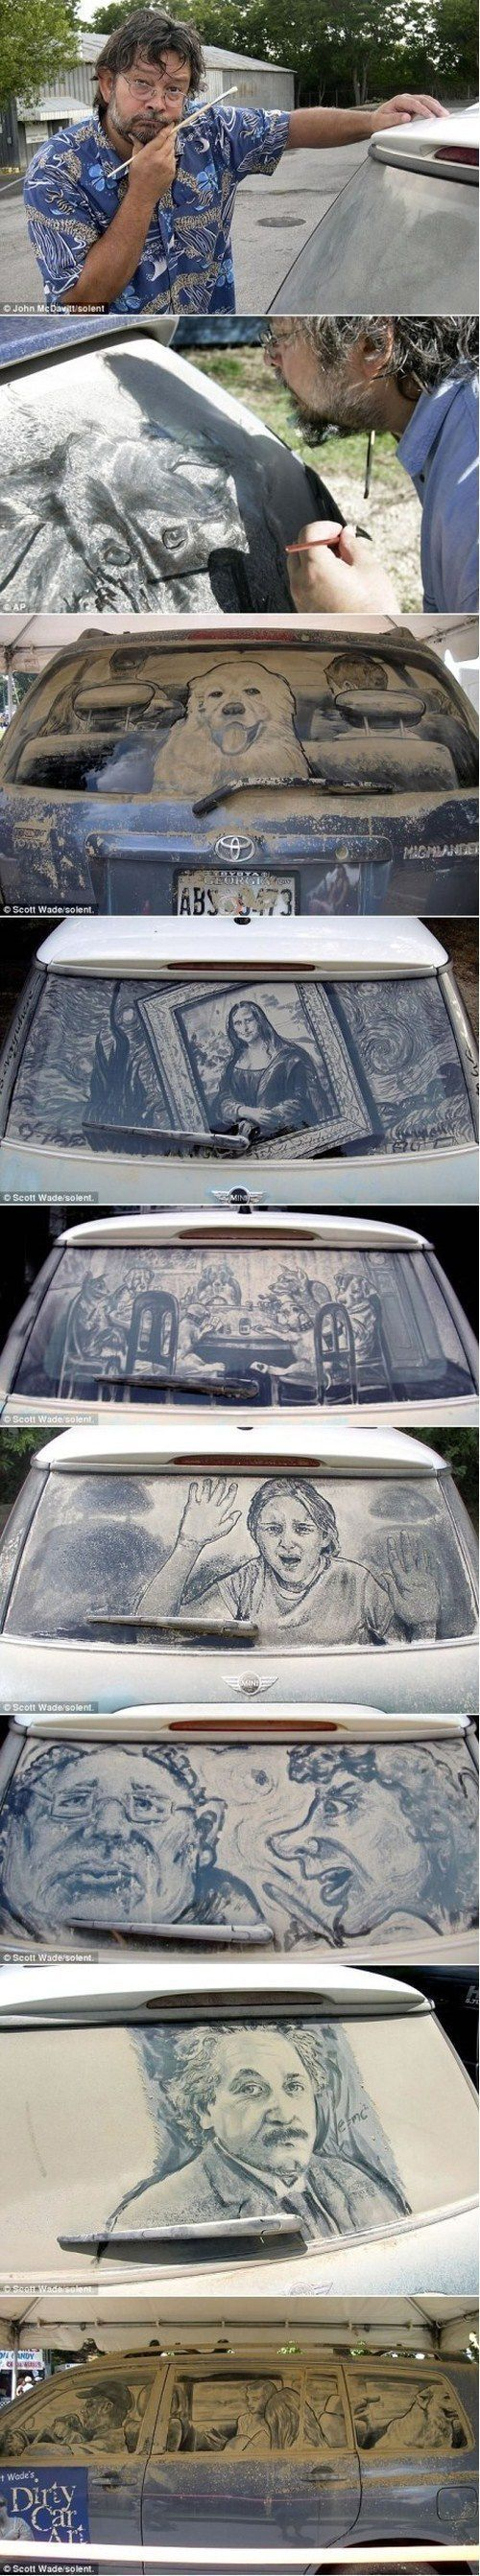 An amazing example of creating art from a natural occurrence. This dirty window art boasts originality, craft, and an underlying passion for the arts.